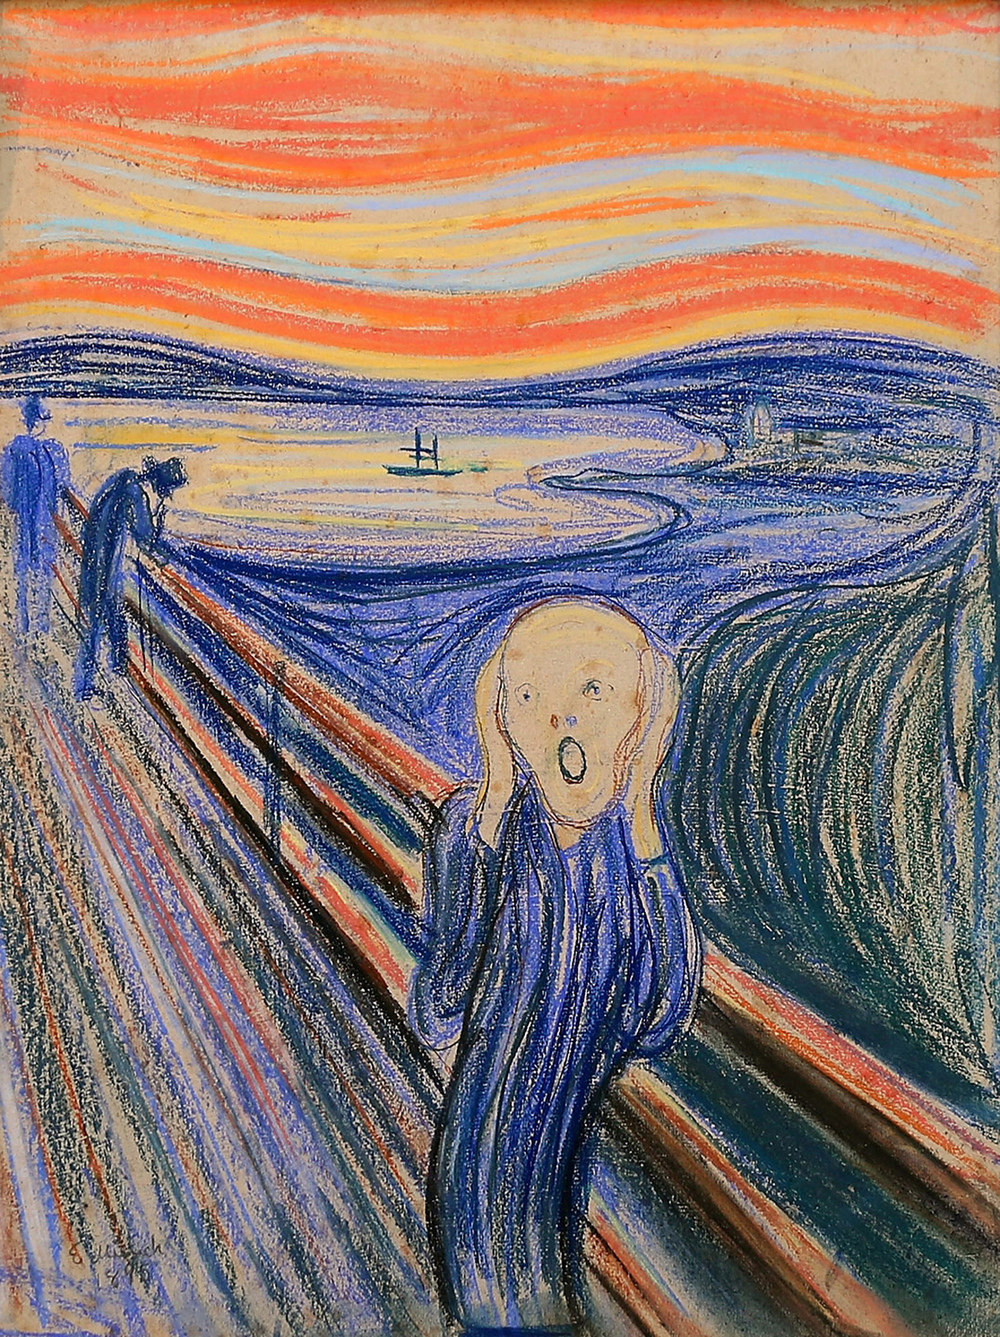 3. In May a pastel version of which famous artwork sold for $120 million in a New York City auction, setting a new world record? A version of 'The Scream', by Edvard Munch